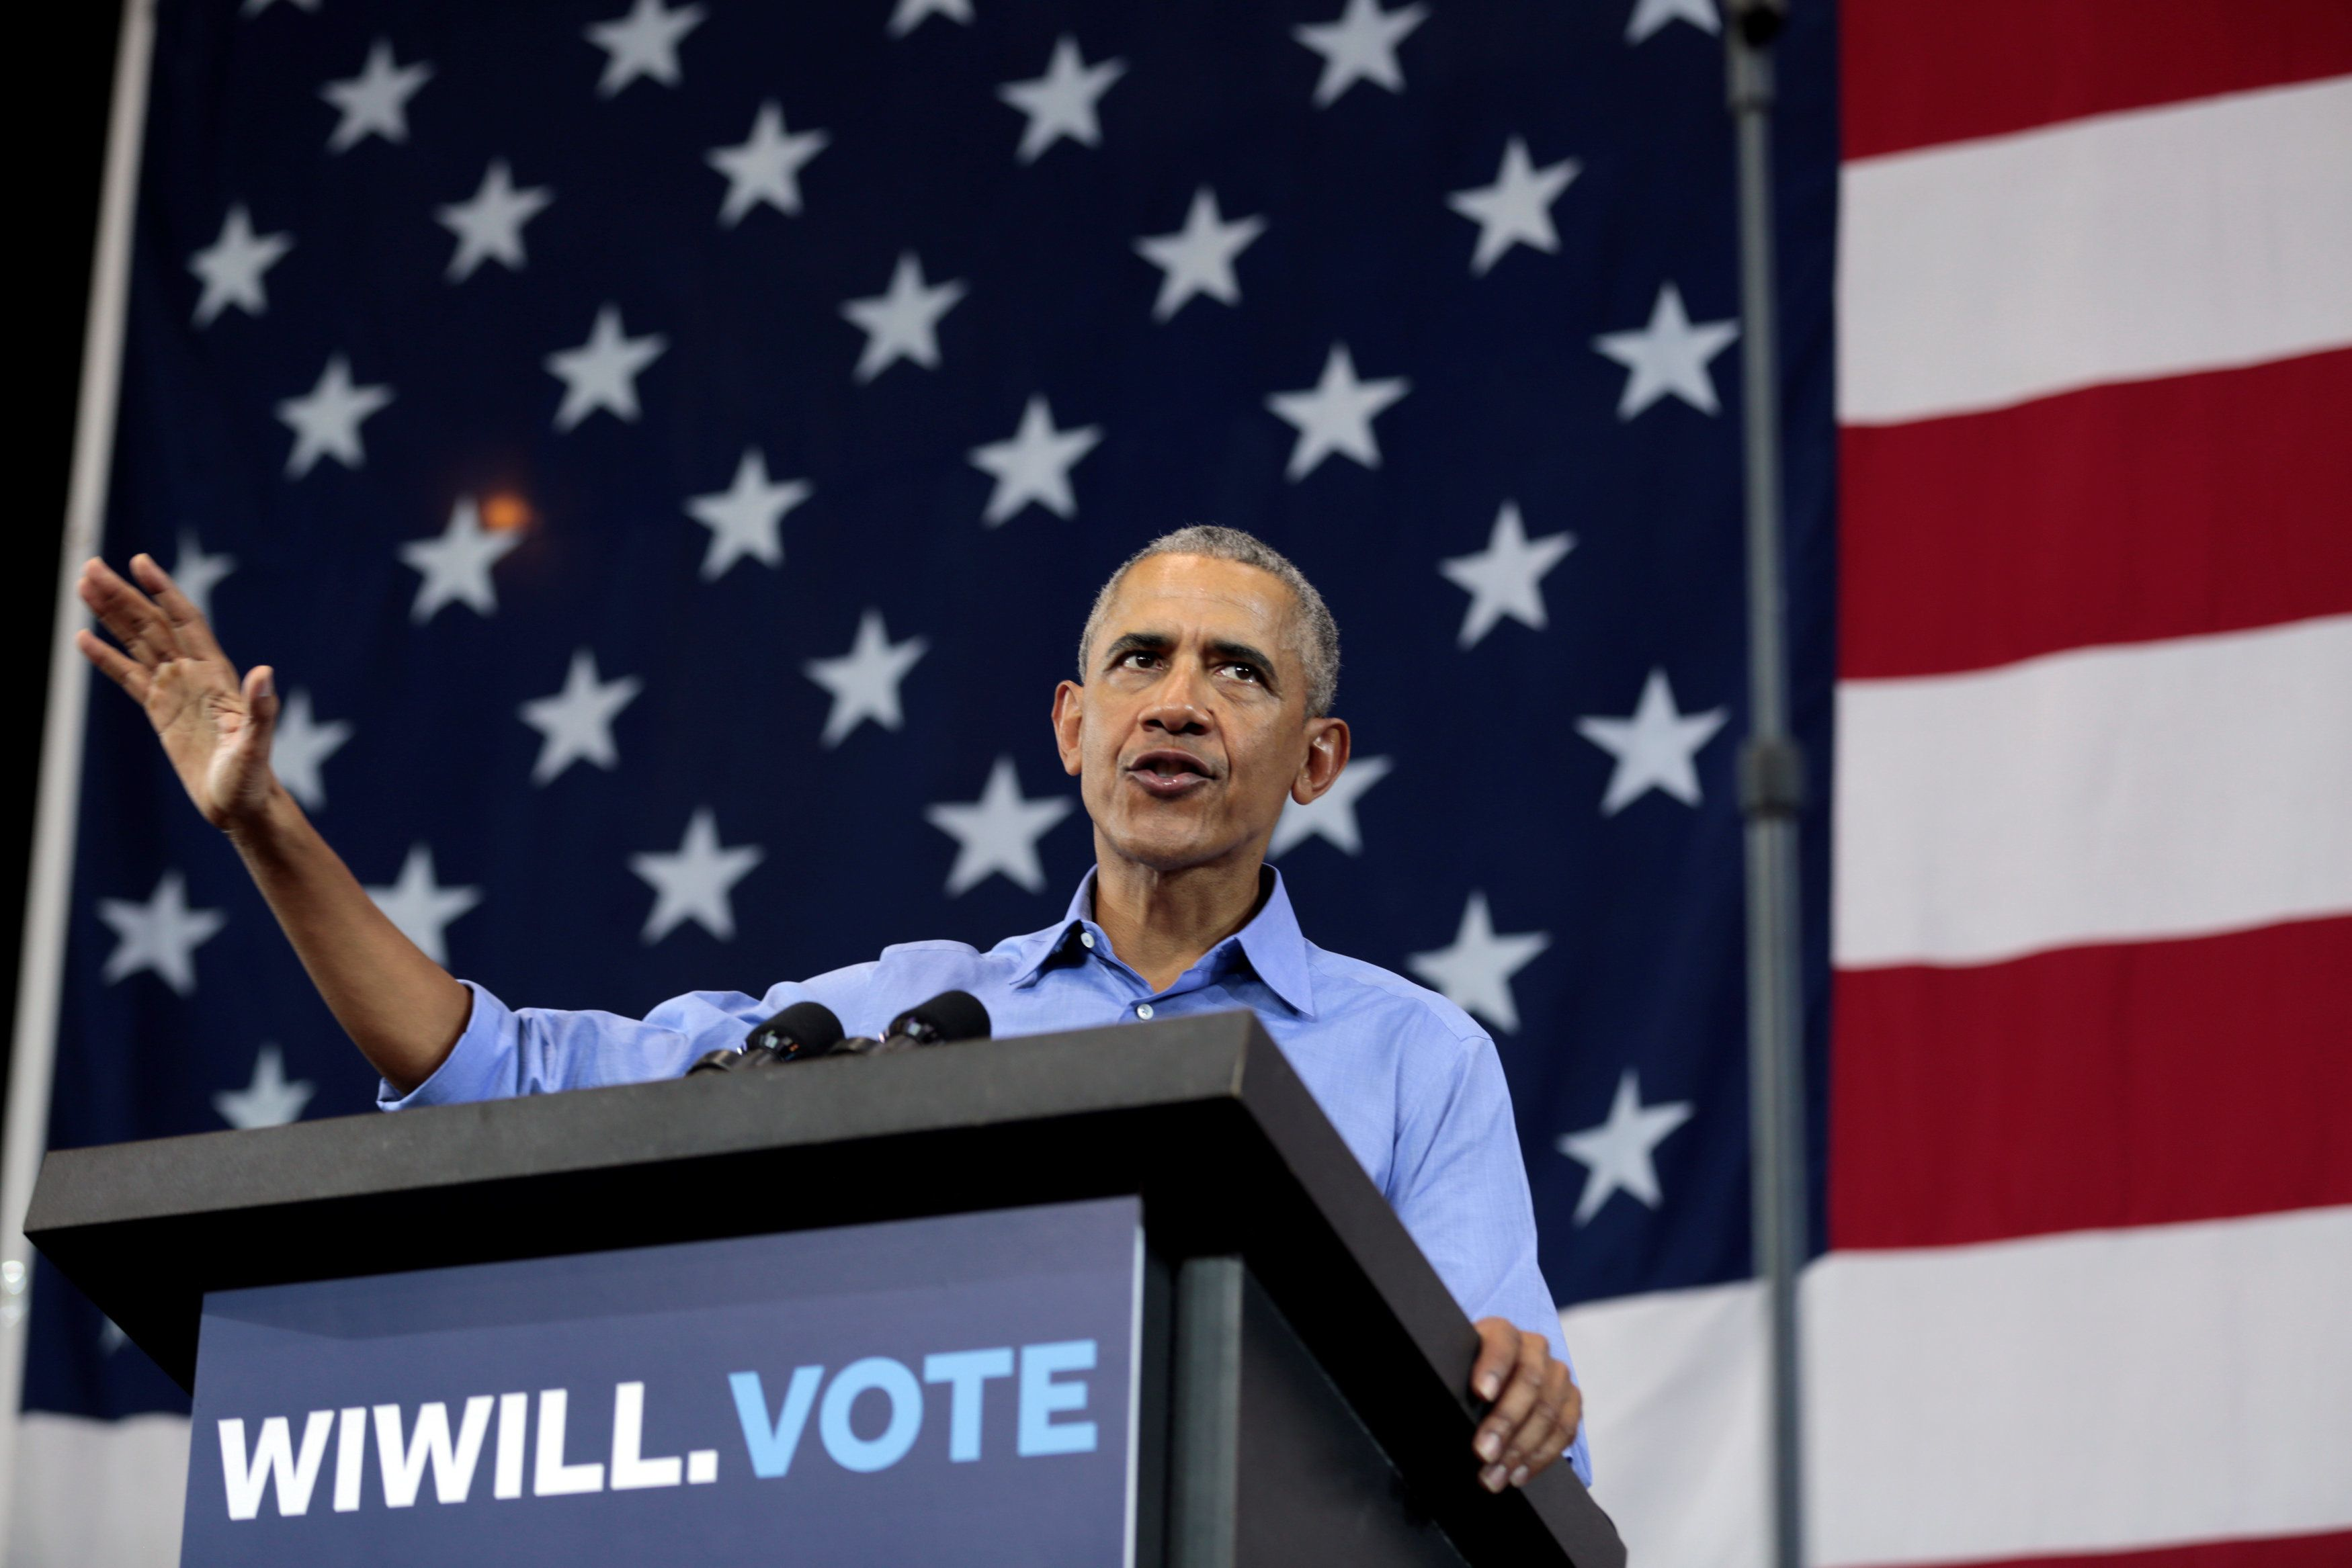 Former U.S. President Barack Obama speaks during a campaign rally for Democratic candidates Tony Evers and U.S. Senator Tammy Baldwin (D-WI) at North Division High School in Milwaukee, Wisconsin, U.S., October 26, 2018.     REUTERS/Sara Stathas